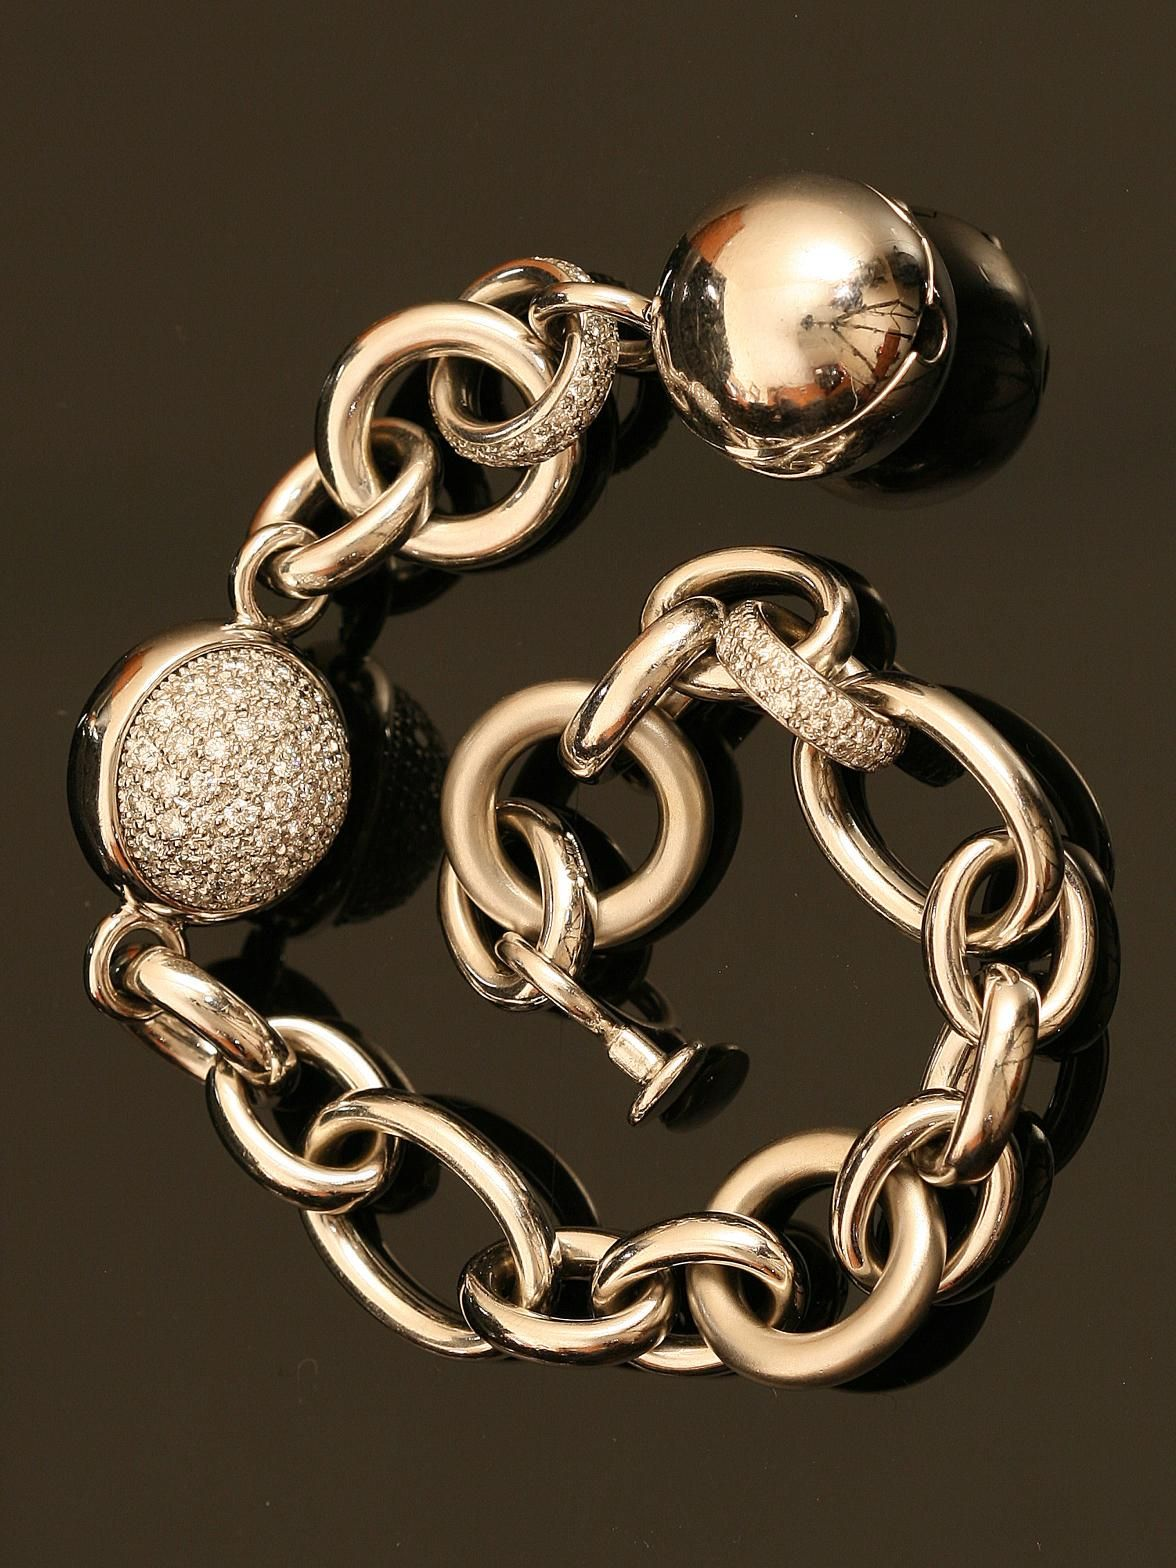 Pomellato 18KT White Gold Diamond Link Bracelet with Pave Set Diamond Ball and Links. Available at London Jewelers.